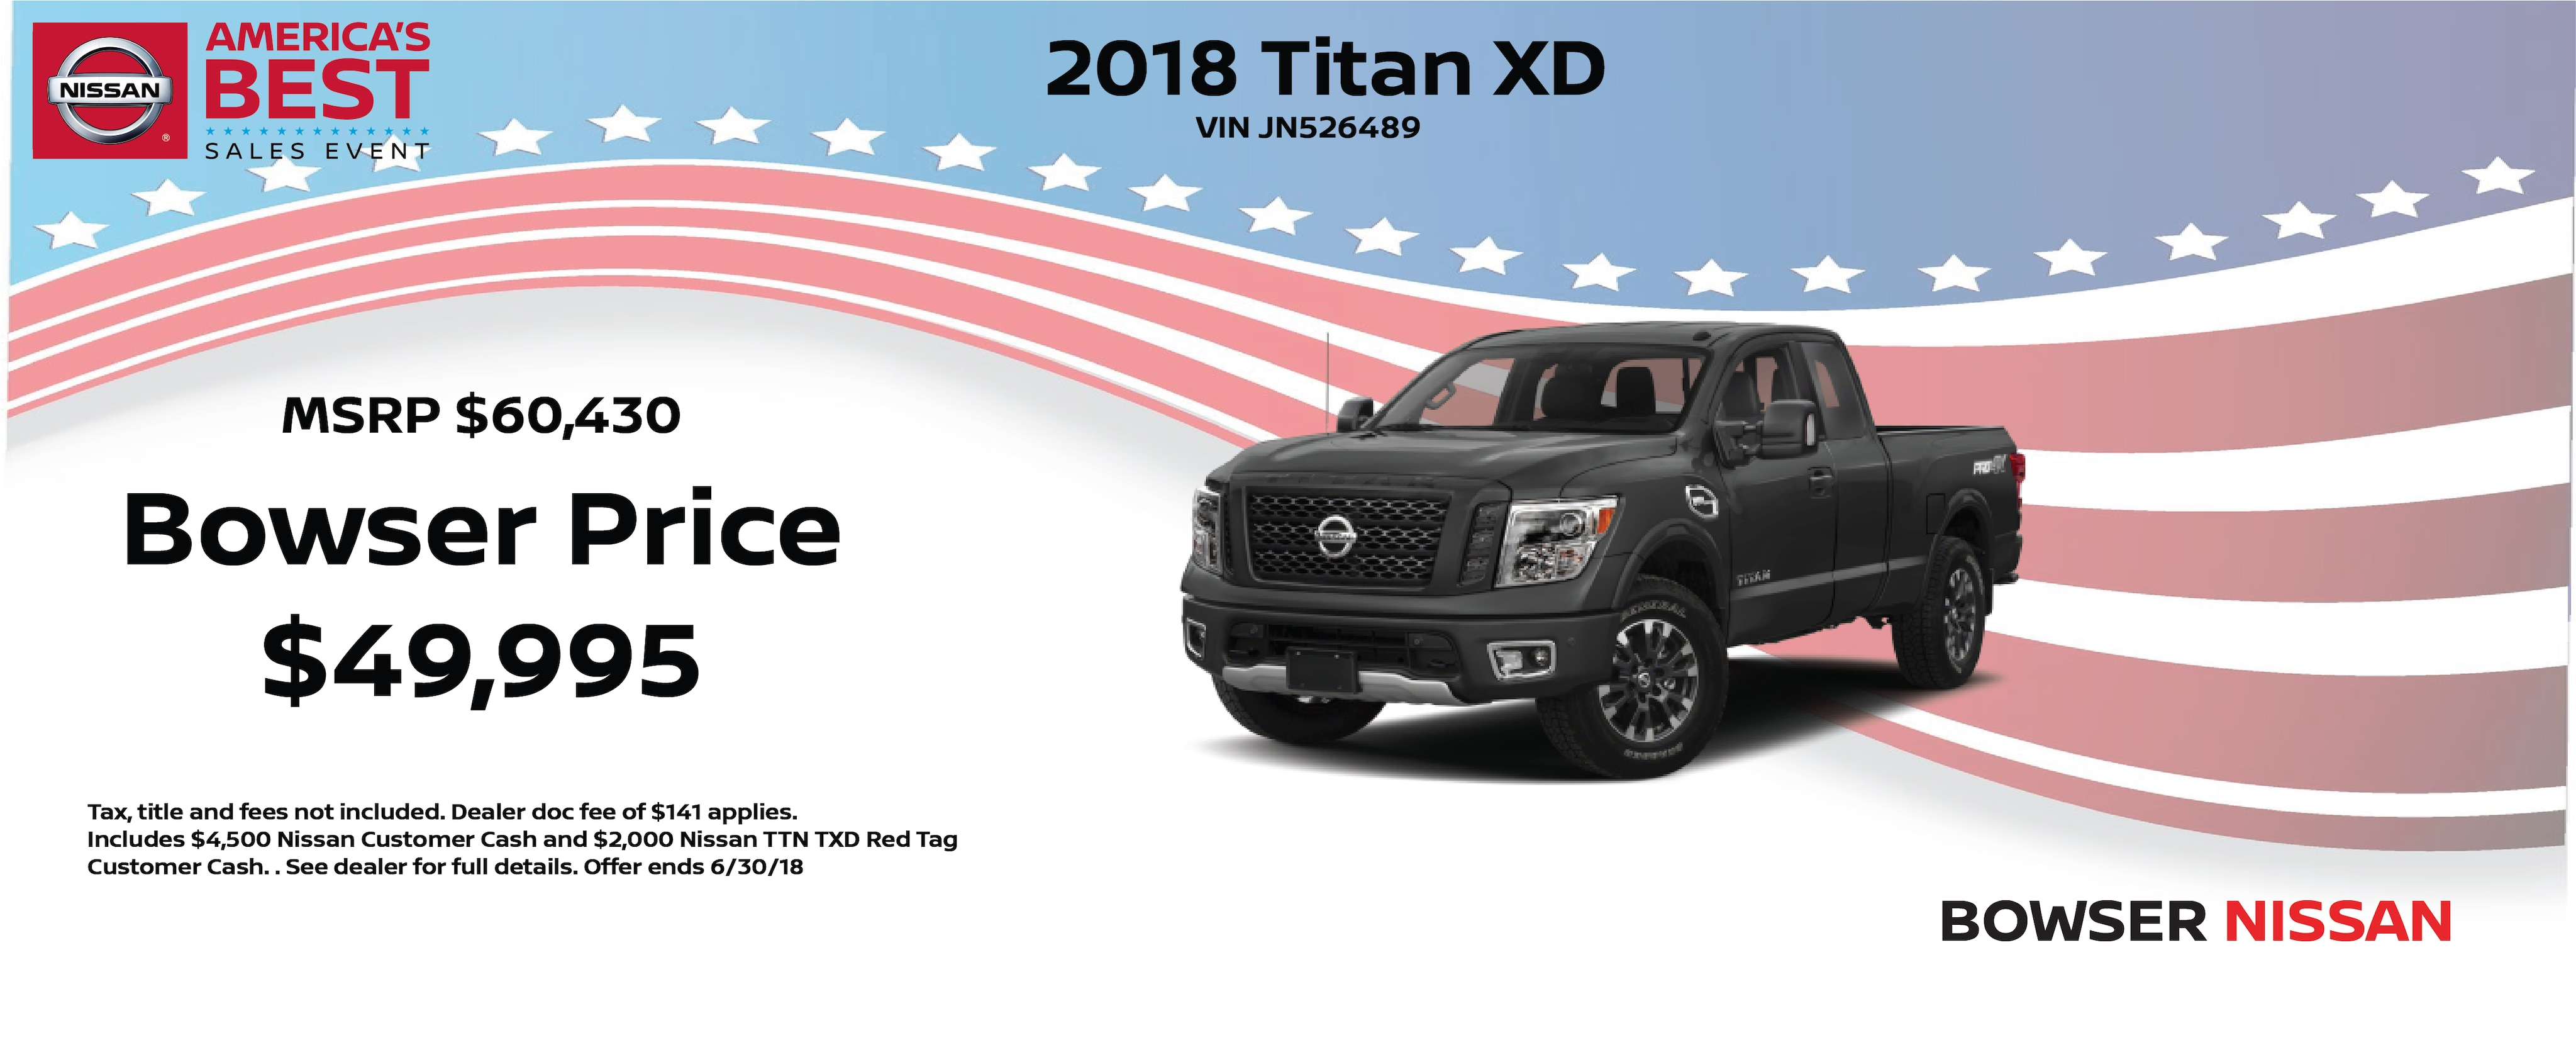 news technology and to cars understand well nissan hopes auto how these near partnership that dealers its why here s for the star me technologies so concept people works exploit better vehicles made buzzwords wars are